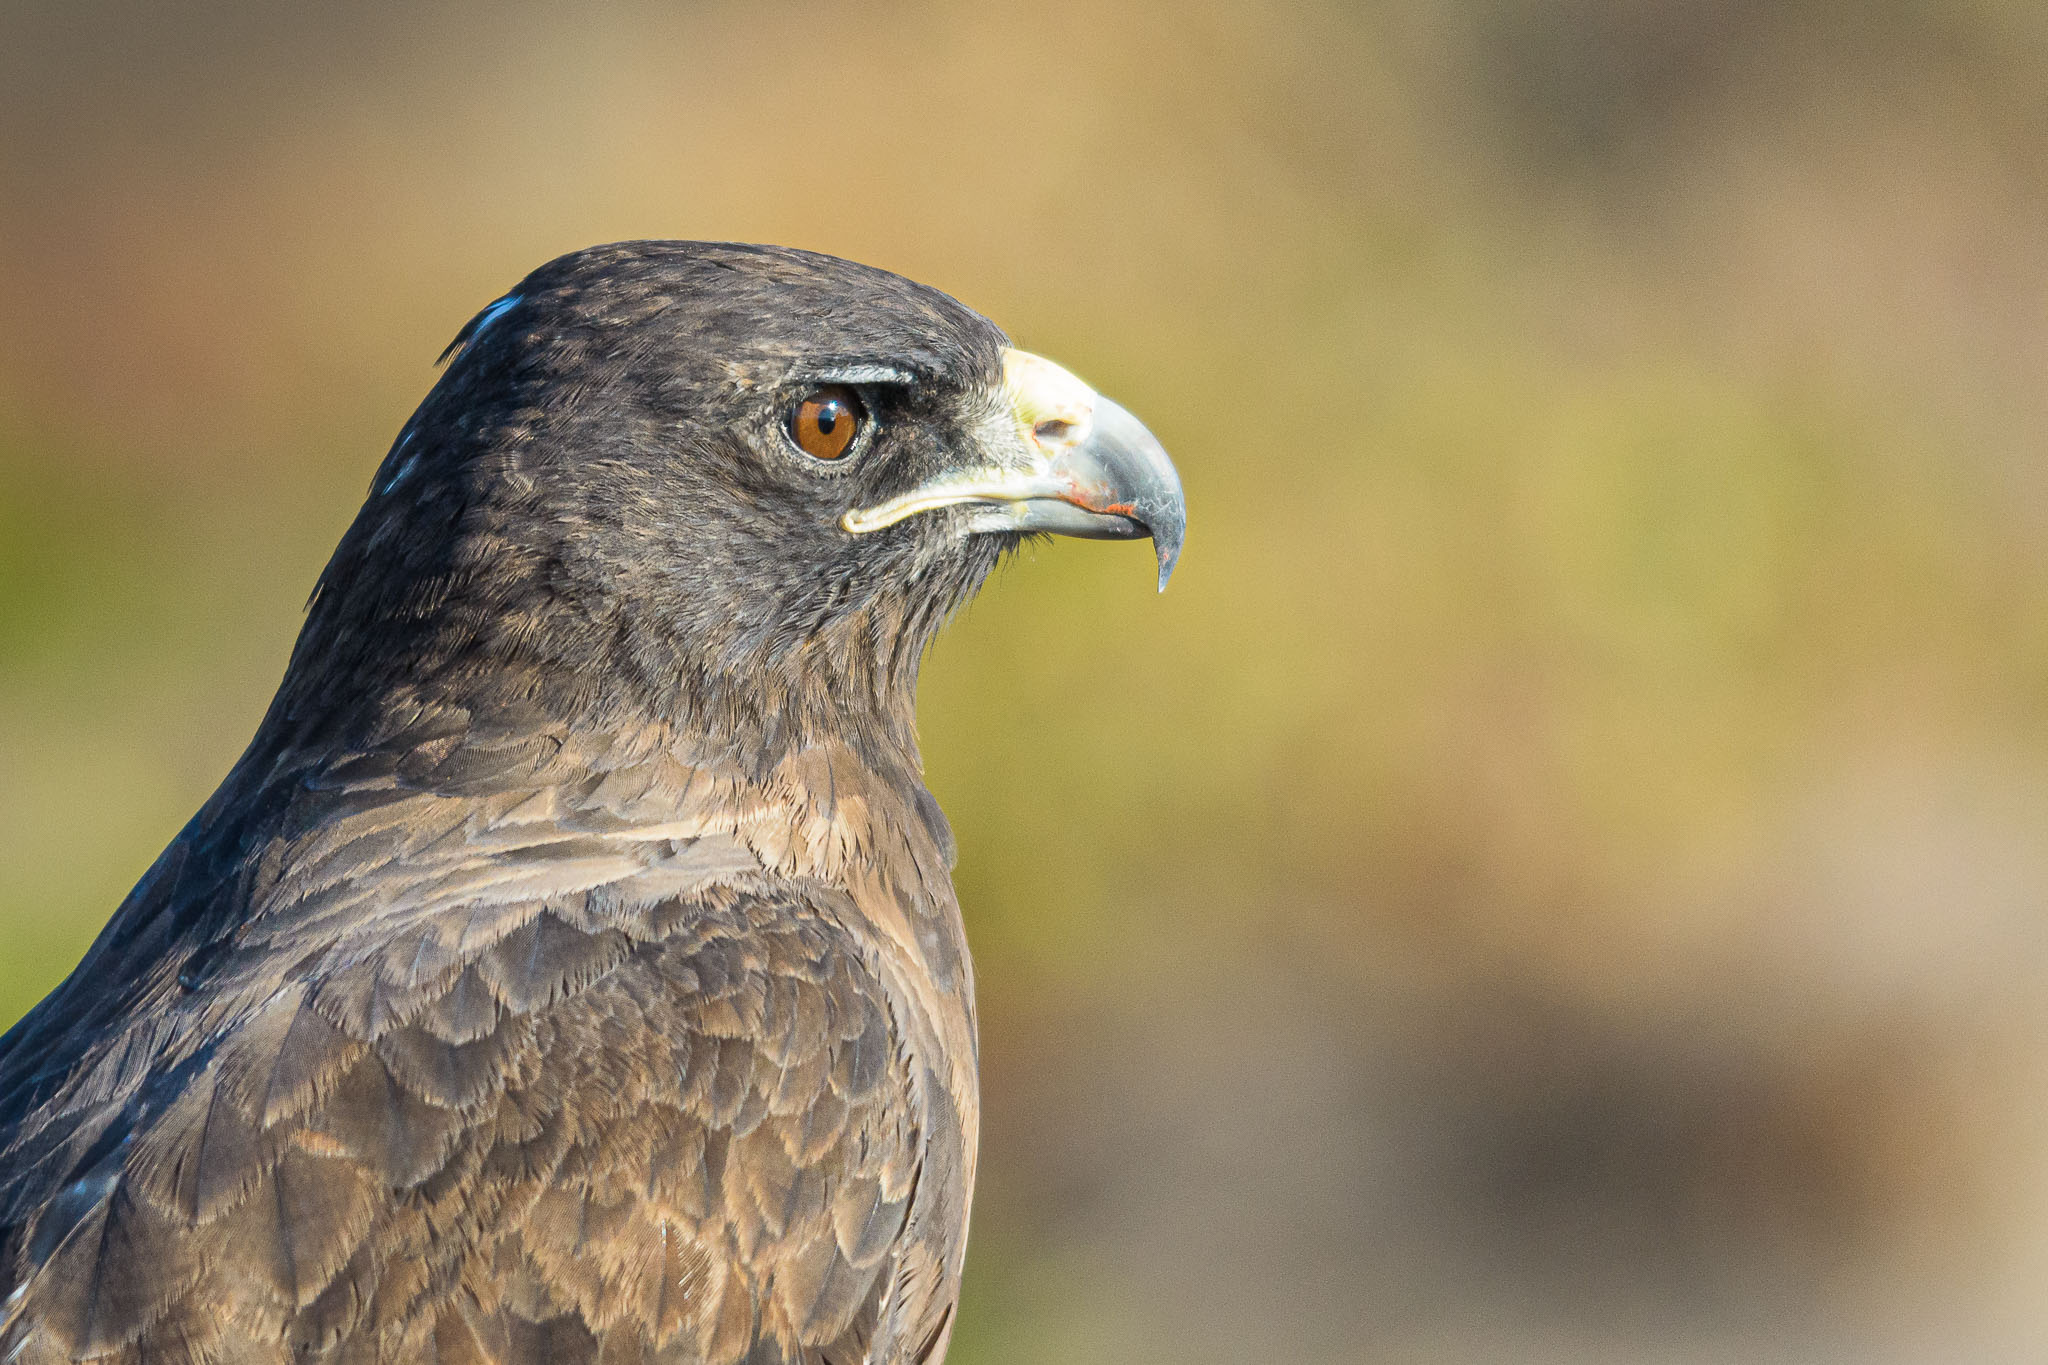 The Galapagos Hawk is one of the few land basted predators on the Islands. He really has nothing to be afraid of and often can be captured down at ground level.